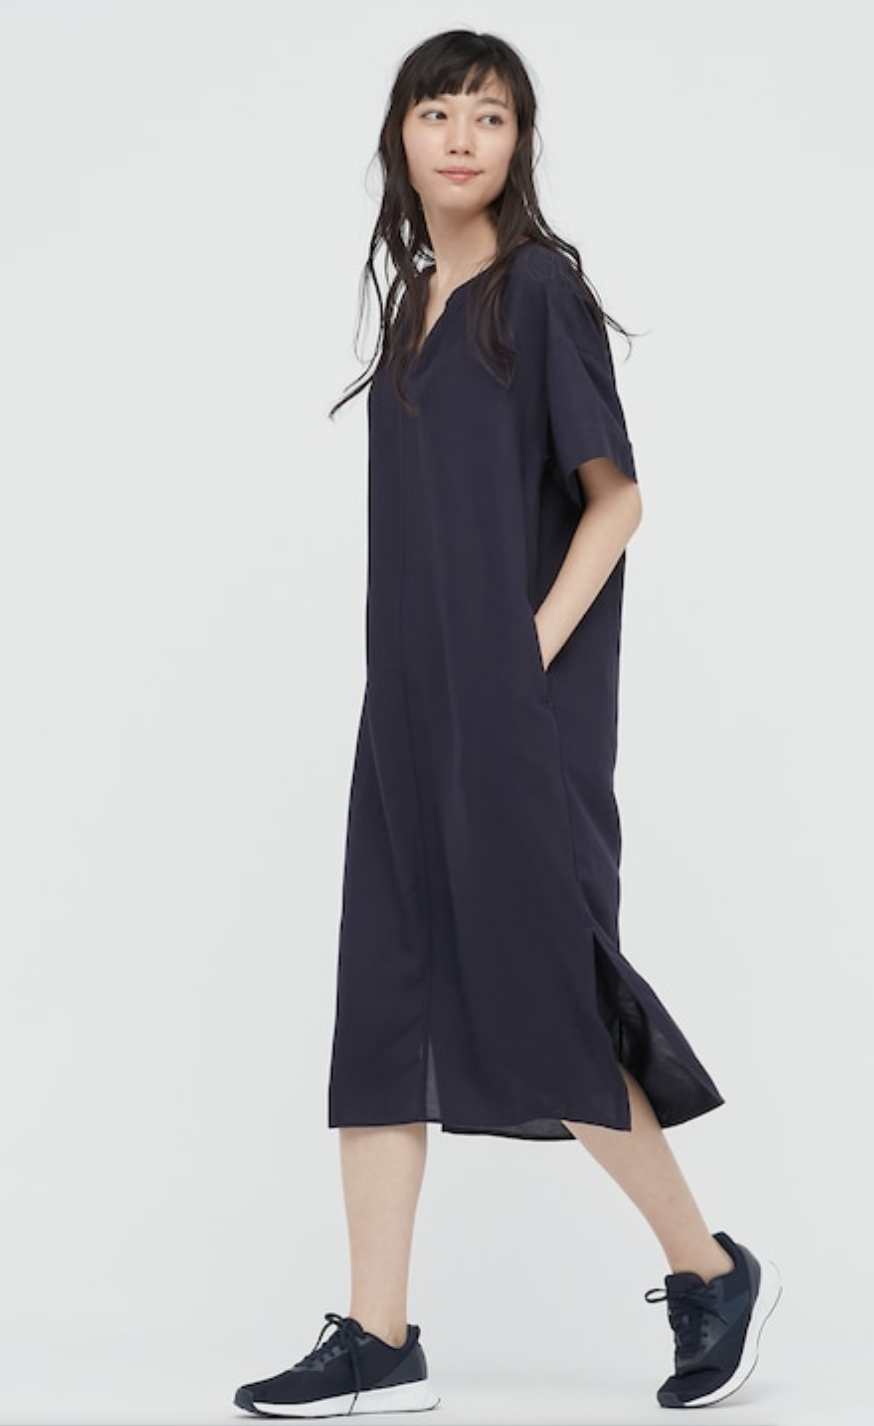 """<p>uniqlo.com</p><p><strong>$39.90</strong></p><p><a href=""""https://go.redirectingat.com?id=74968X1596630&url=https%3A%2F%2Fwww.uniqlo.com%2Fus%2Fen%2Fwomen-linen-blend-short-sleeve-kaftan-dress-433661.html&sref=https%3A%2F%2Fwww.townandcountrymag.com%2Fstyle%2Fg36049039%2Fbest-linen-dresses-women%2F"""" rel=""""nofollow noopener"""" target=""""_blank"""" data-ylk=""""slk:Shop Now"""" class=""""link rapid-noclick-resp"""">Shop Now</a></p><p>If you haven't heard of caftan-chic, consider this your gateway drug. A traditional caftan cut (with pockets) in a navy linen works for all occasions. </p>"""